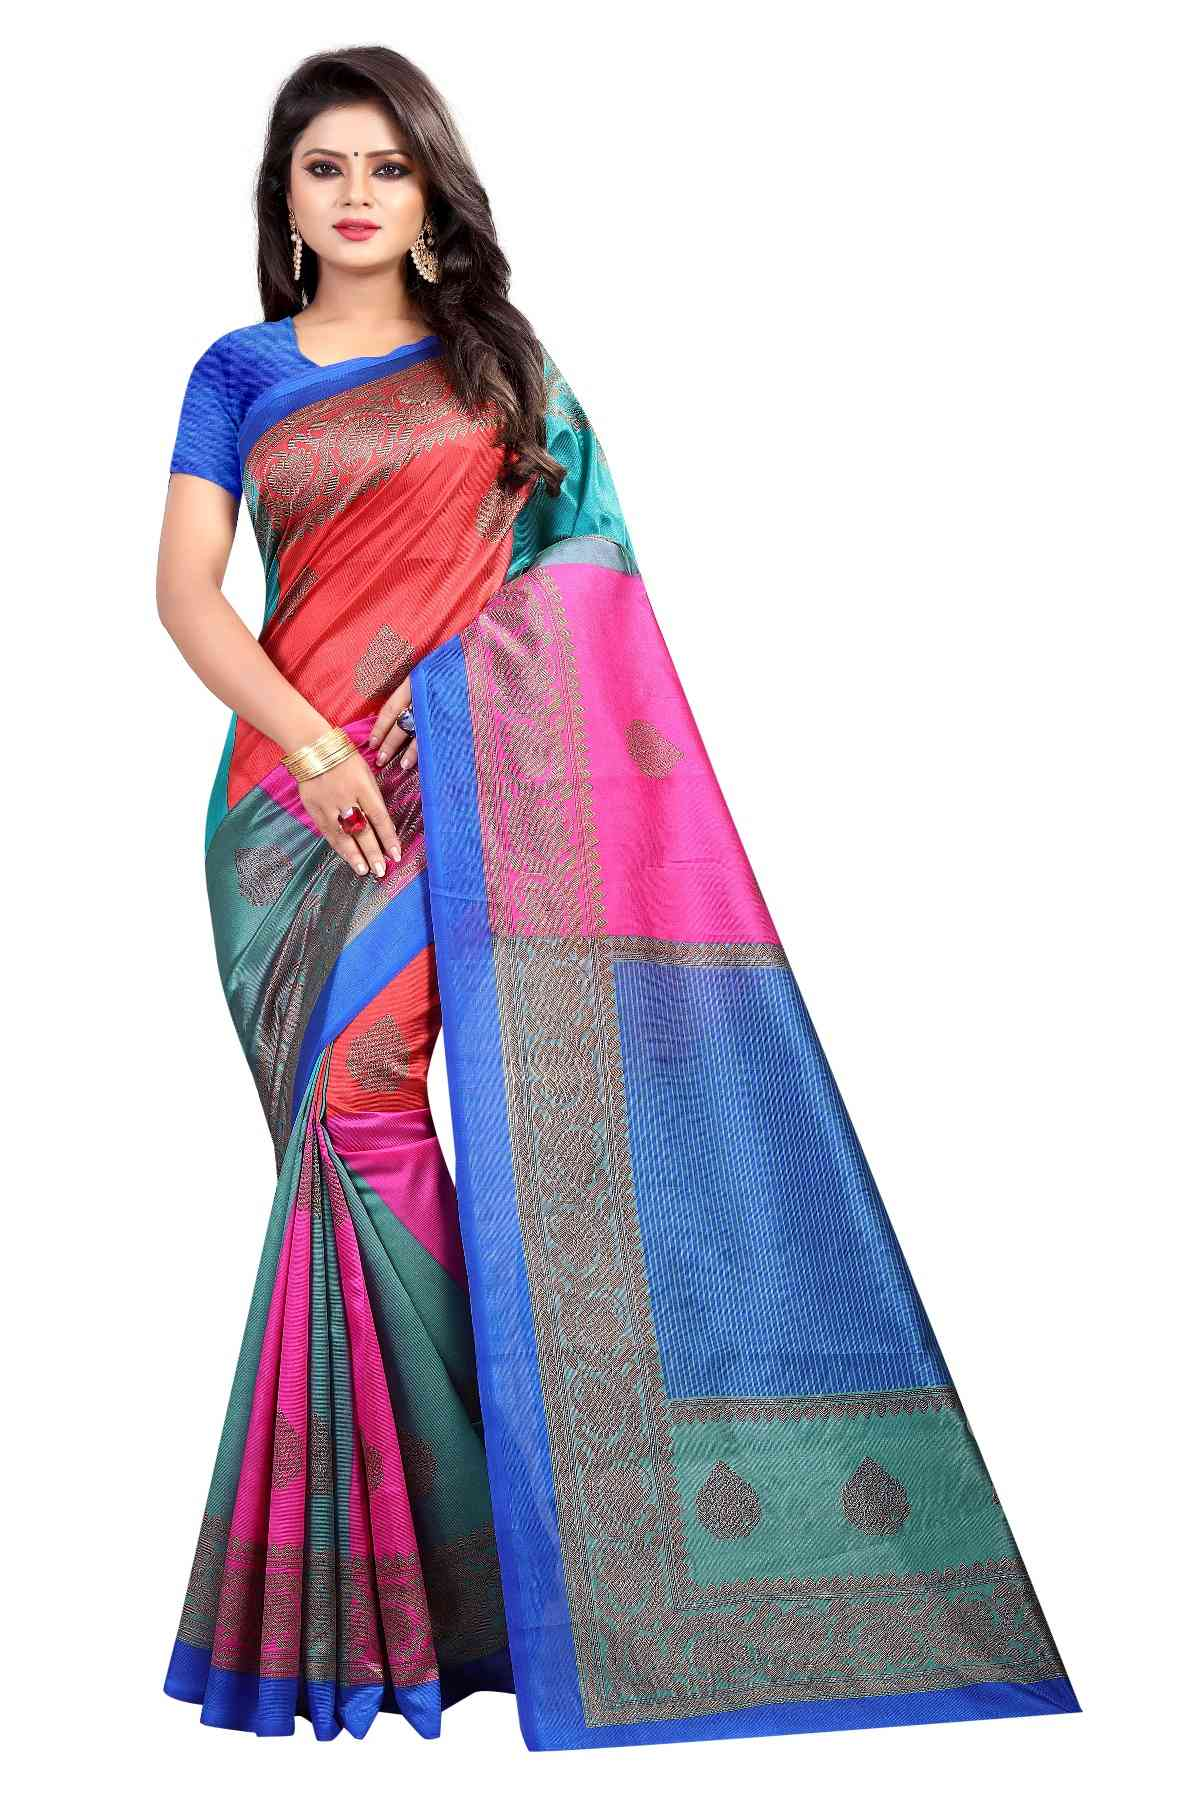 4 SQUARE BLUE Mysore Cotton Silk Sarees For Womens